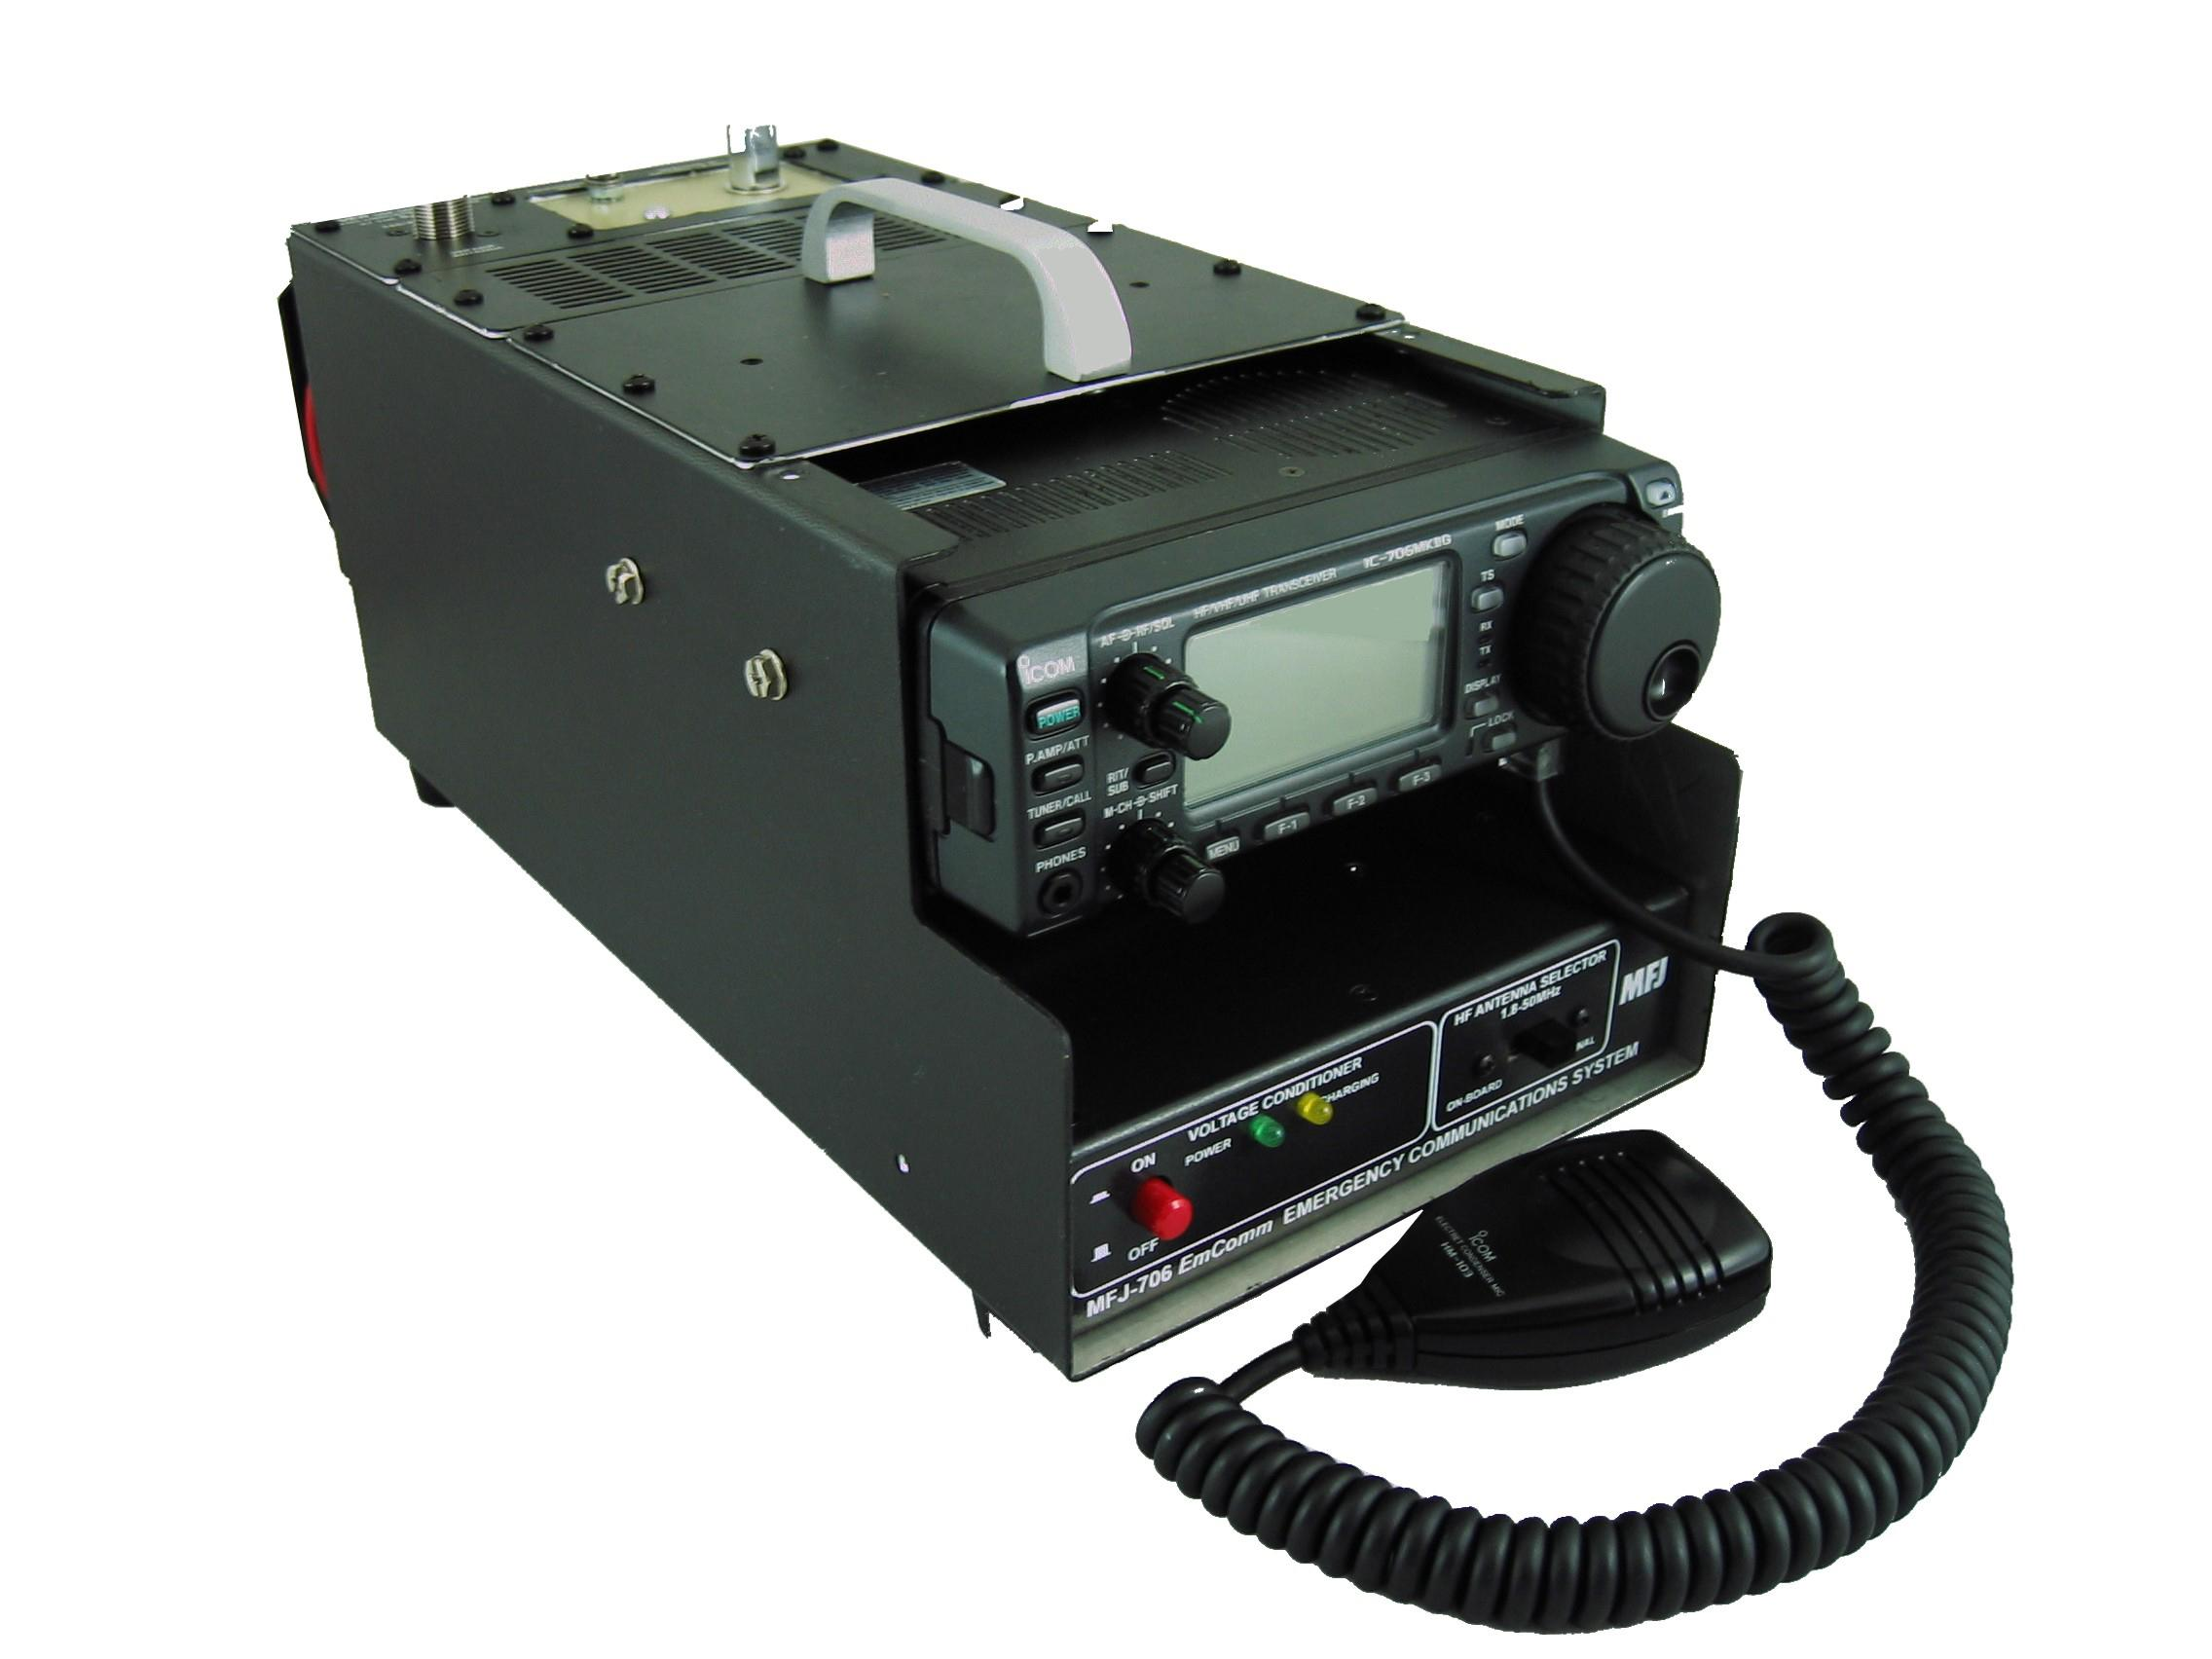 MFJ-7000 PORT/MOBILE GRAB-&-GO EMCOMM, FOR IC-7000